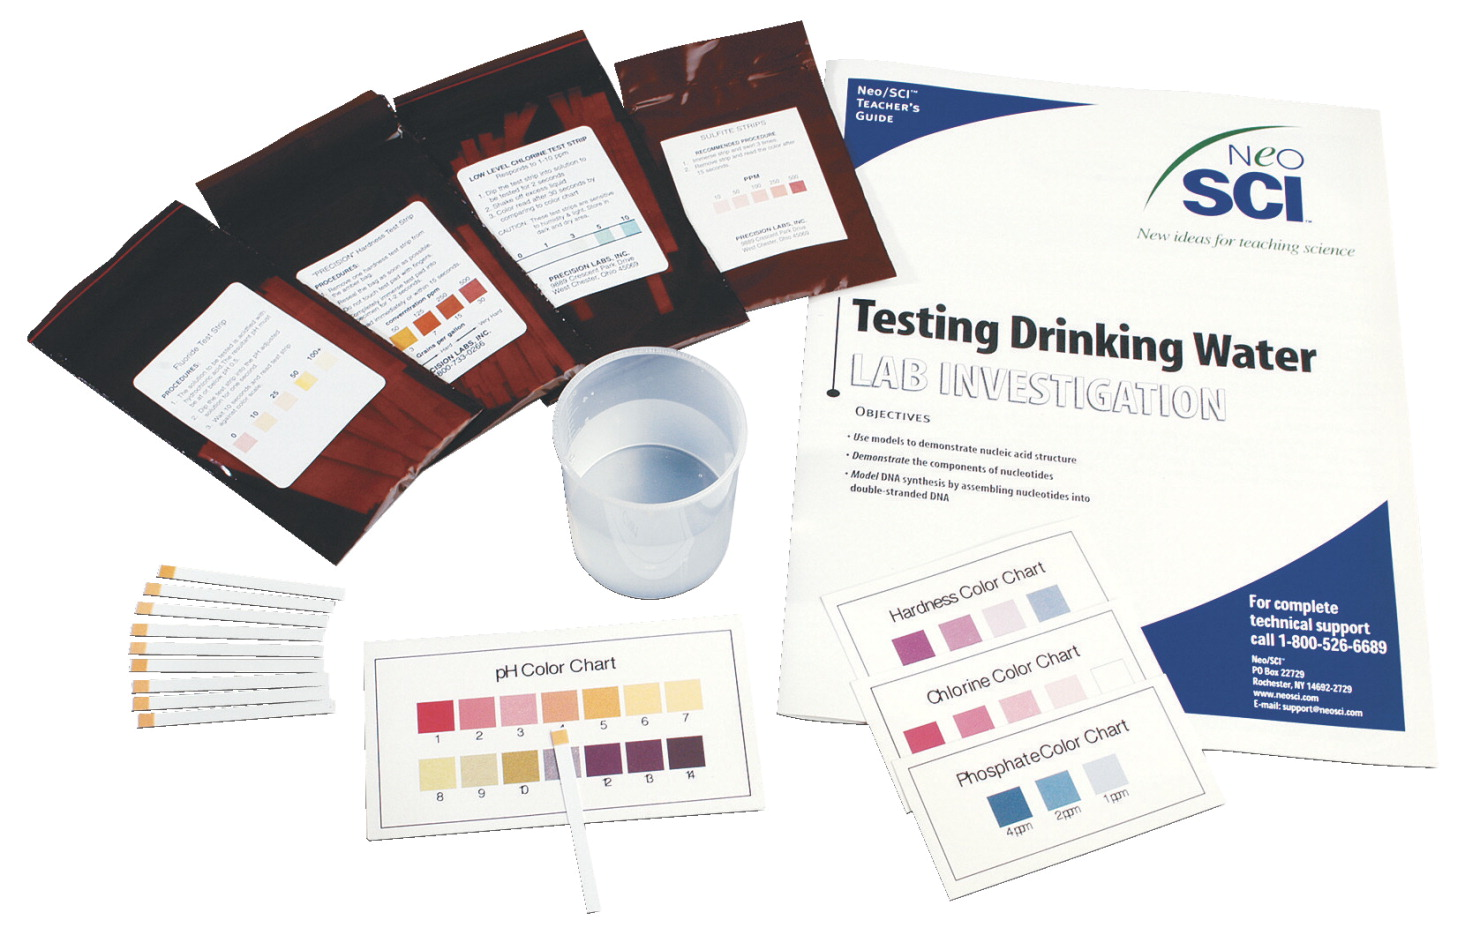 Neo/SCI Water Quality Test Kit Series - Testing Drinking Water Lab